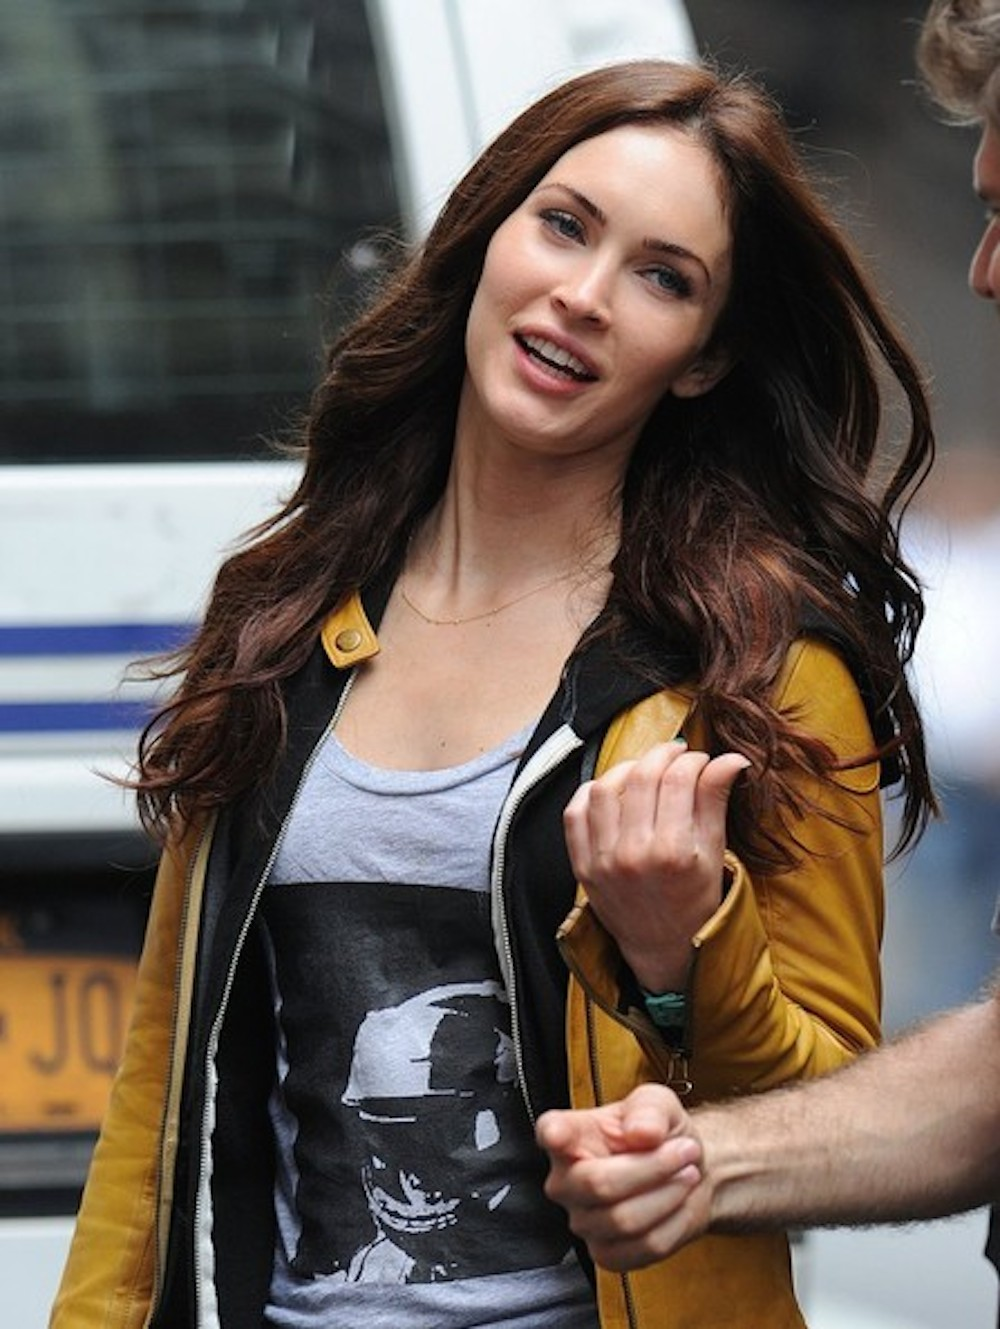 Megan+Fox+Teenage+Mutant+Ninja+Turtles+Films+_bNJU7BXr6el